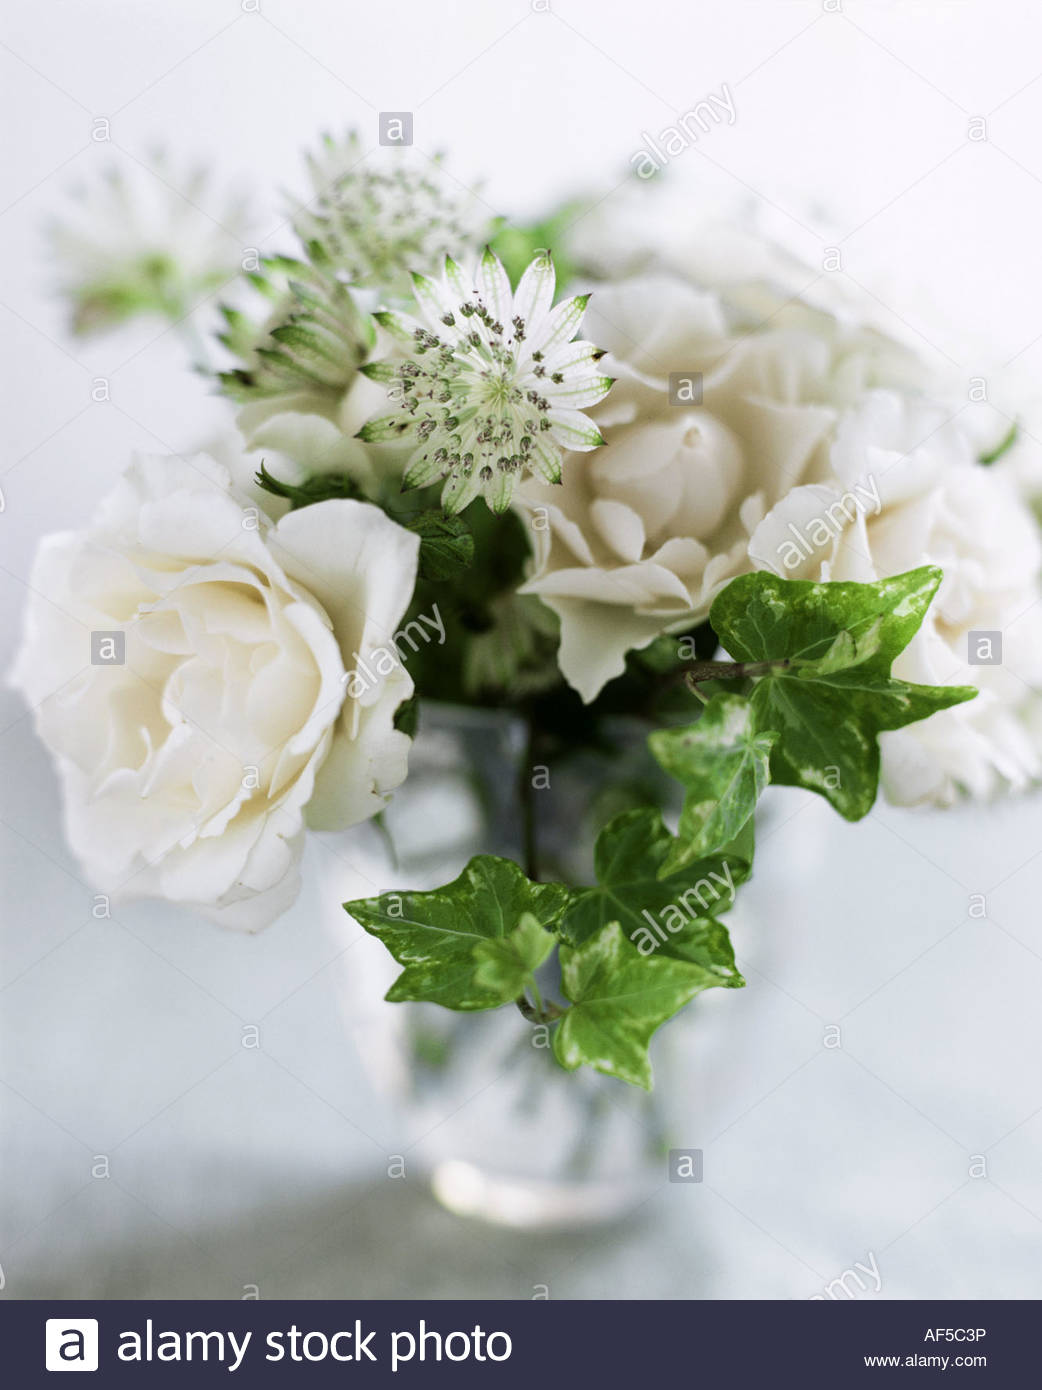 Bouquet of white roses and exotic flowers Stock Photo: 13836969 - Alamy